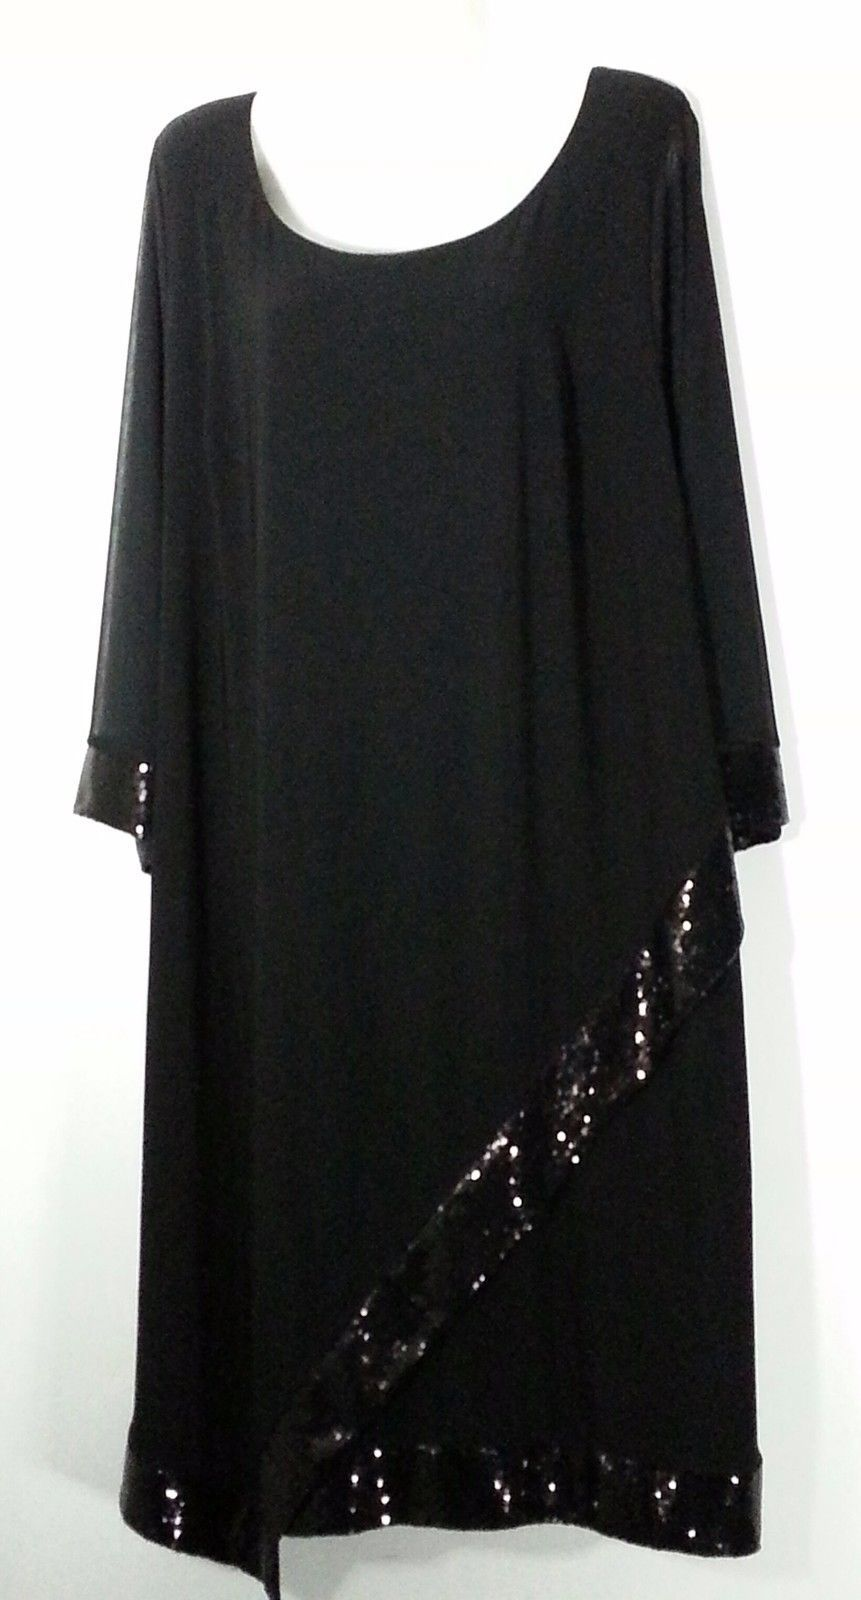 c1ff9e8098 Catherines Black Dress With Sequins 1X 18 20 and 11 similar items. 57